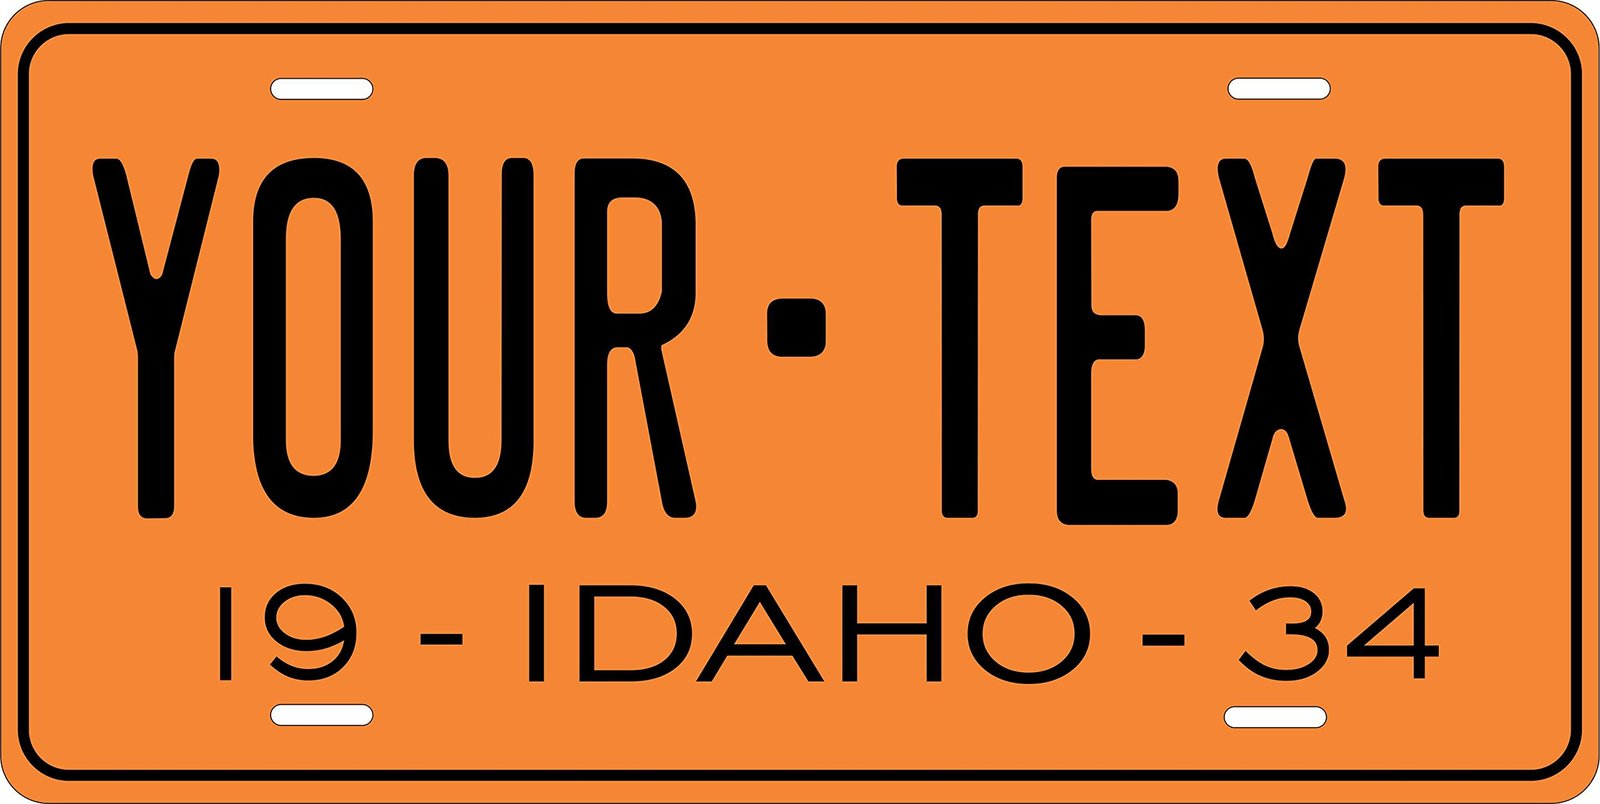 Idaho 1934 Personalized Tag Vehicle Car Auto License Plate